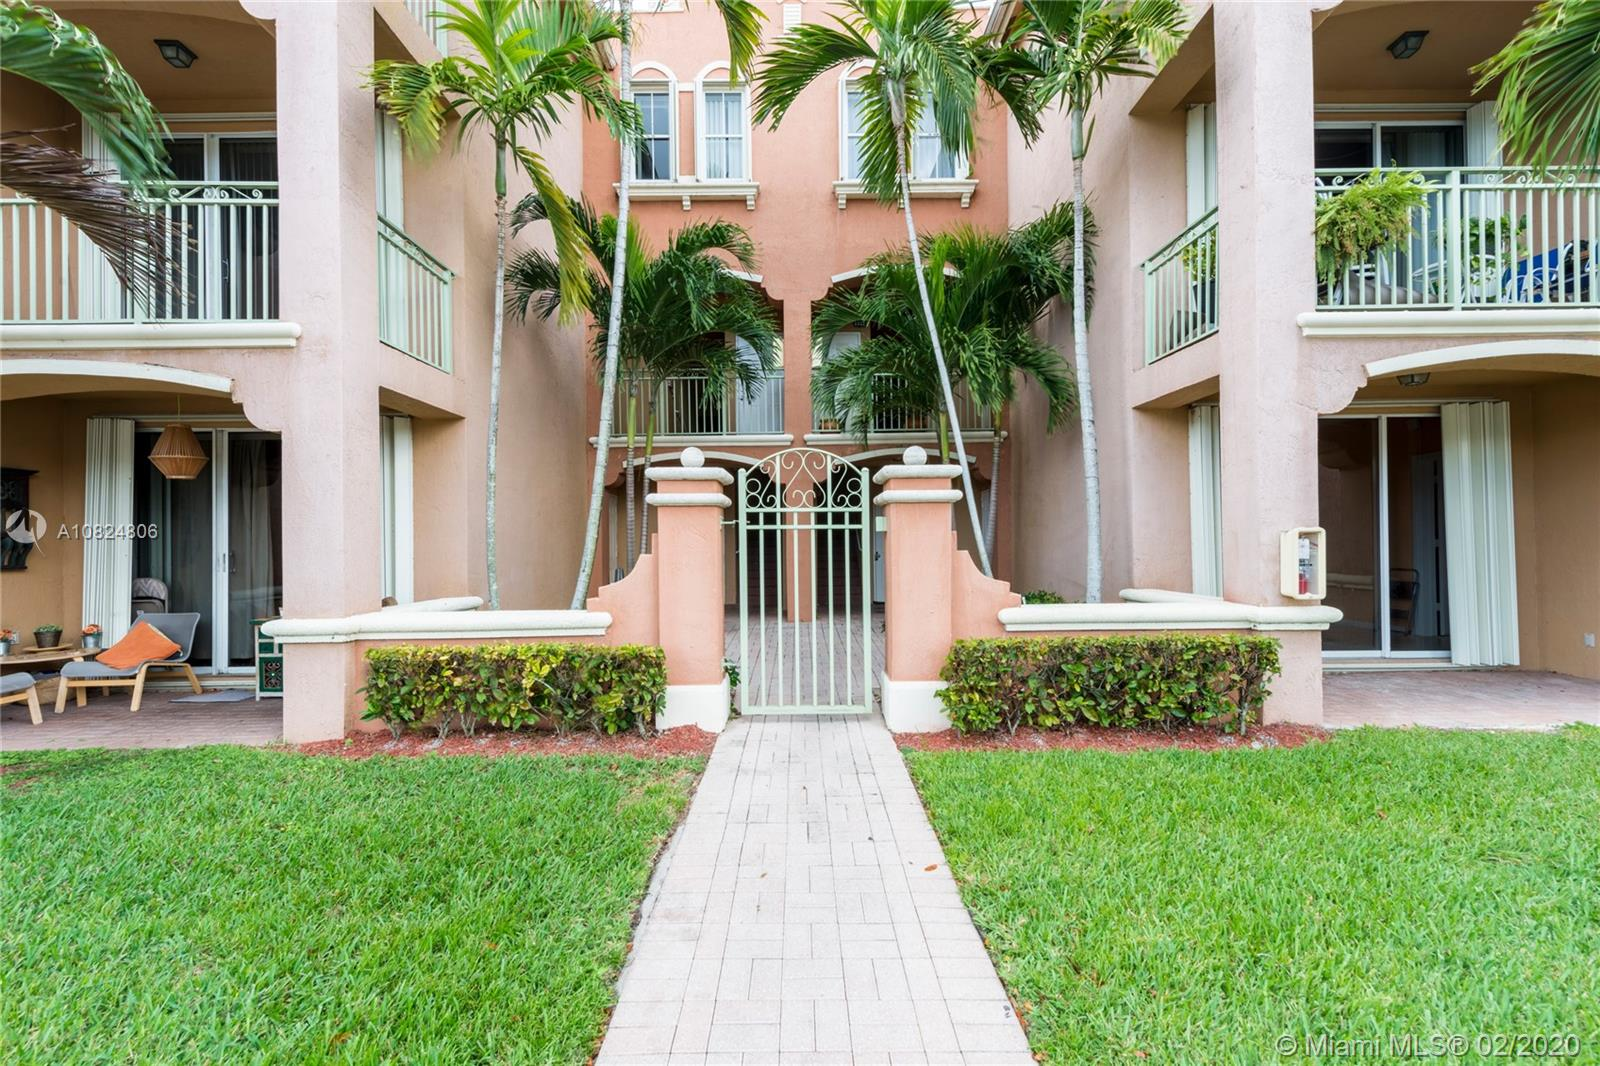 6420 NW 114th Ave #1302 For Sale A10824806, FL